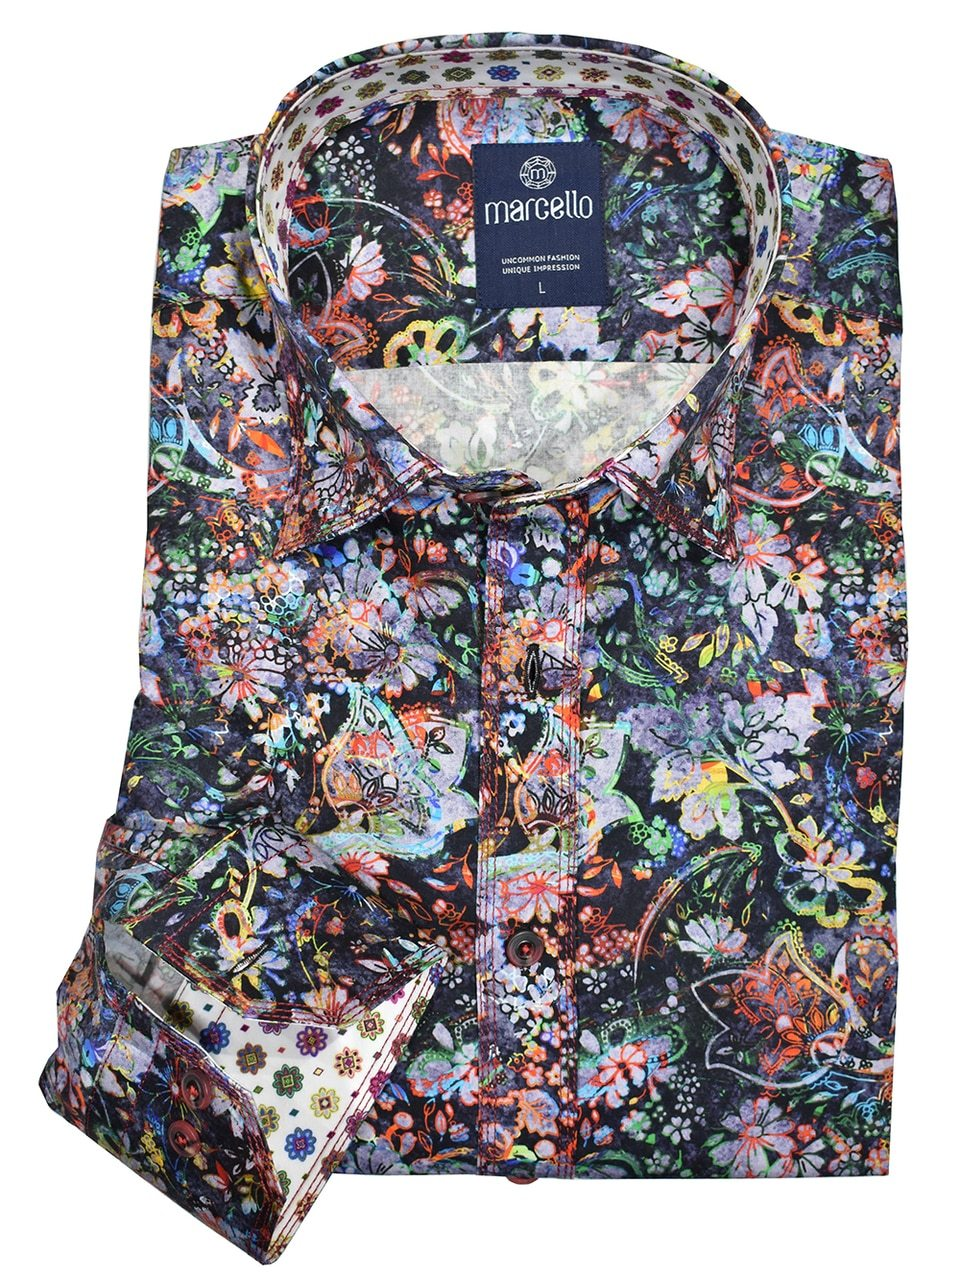 W1047 Washed Fiesta Floral Shirt - Marcello Sport